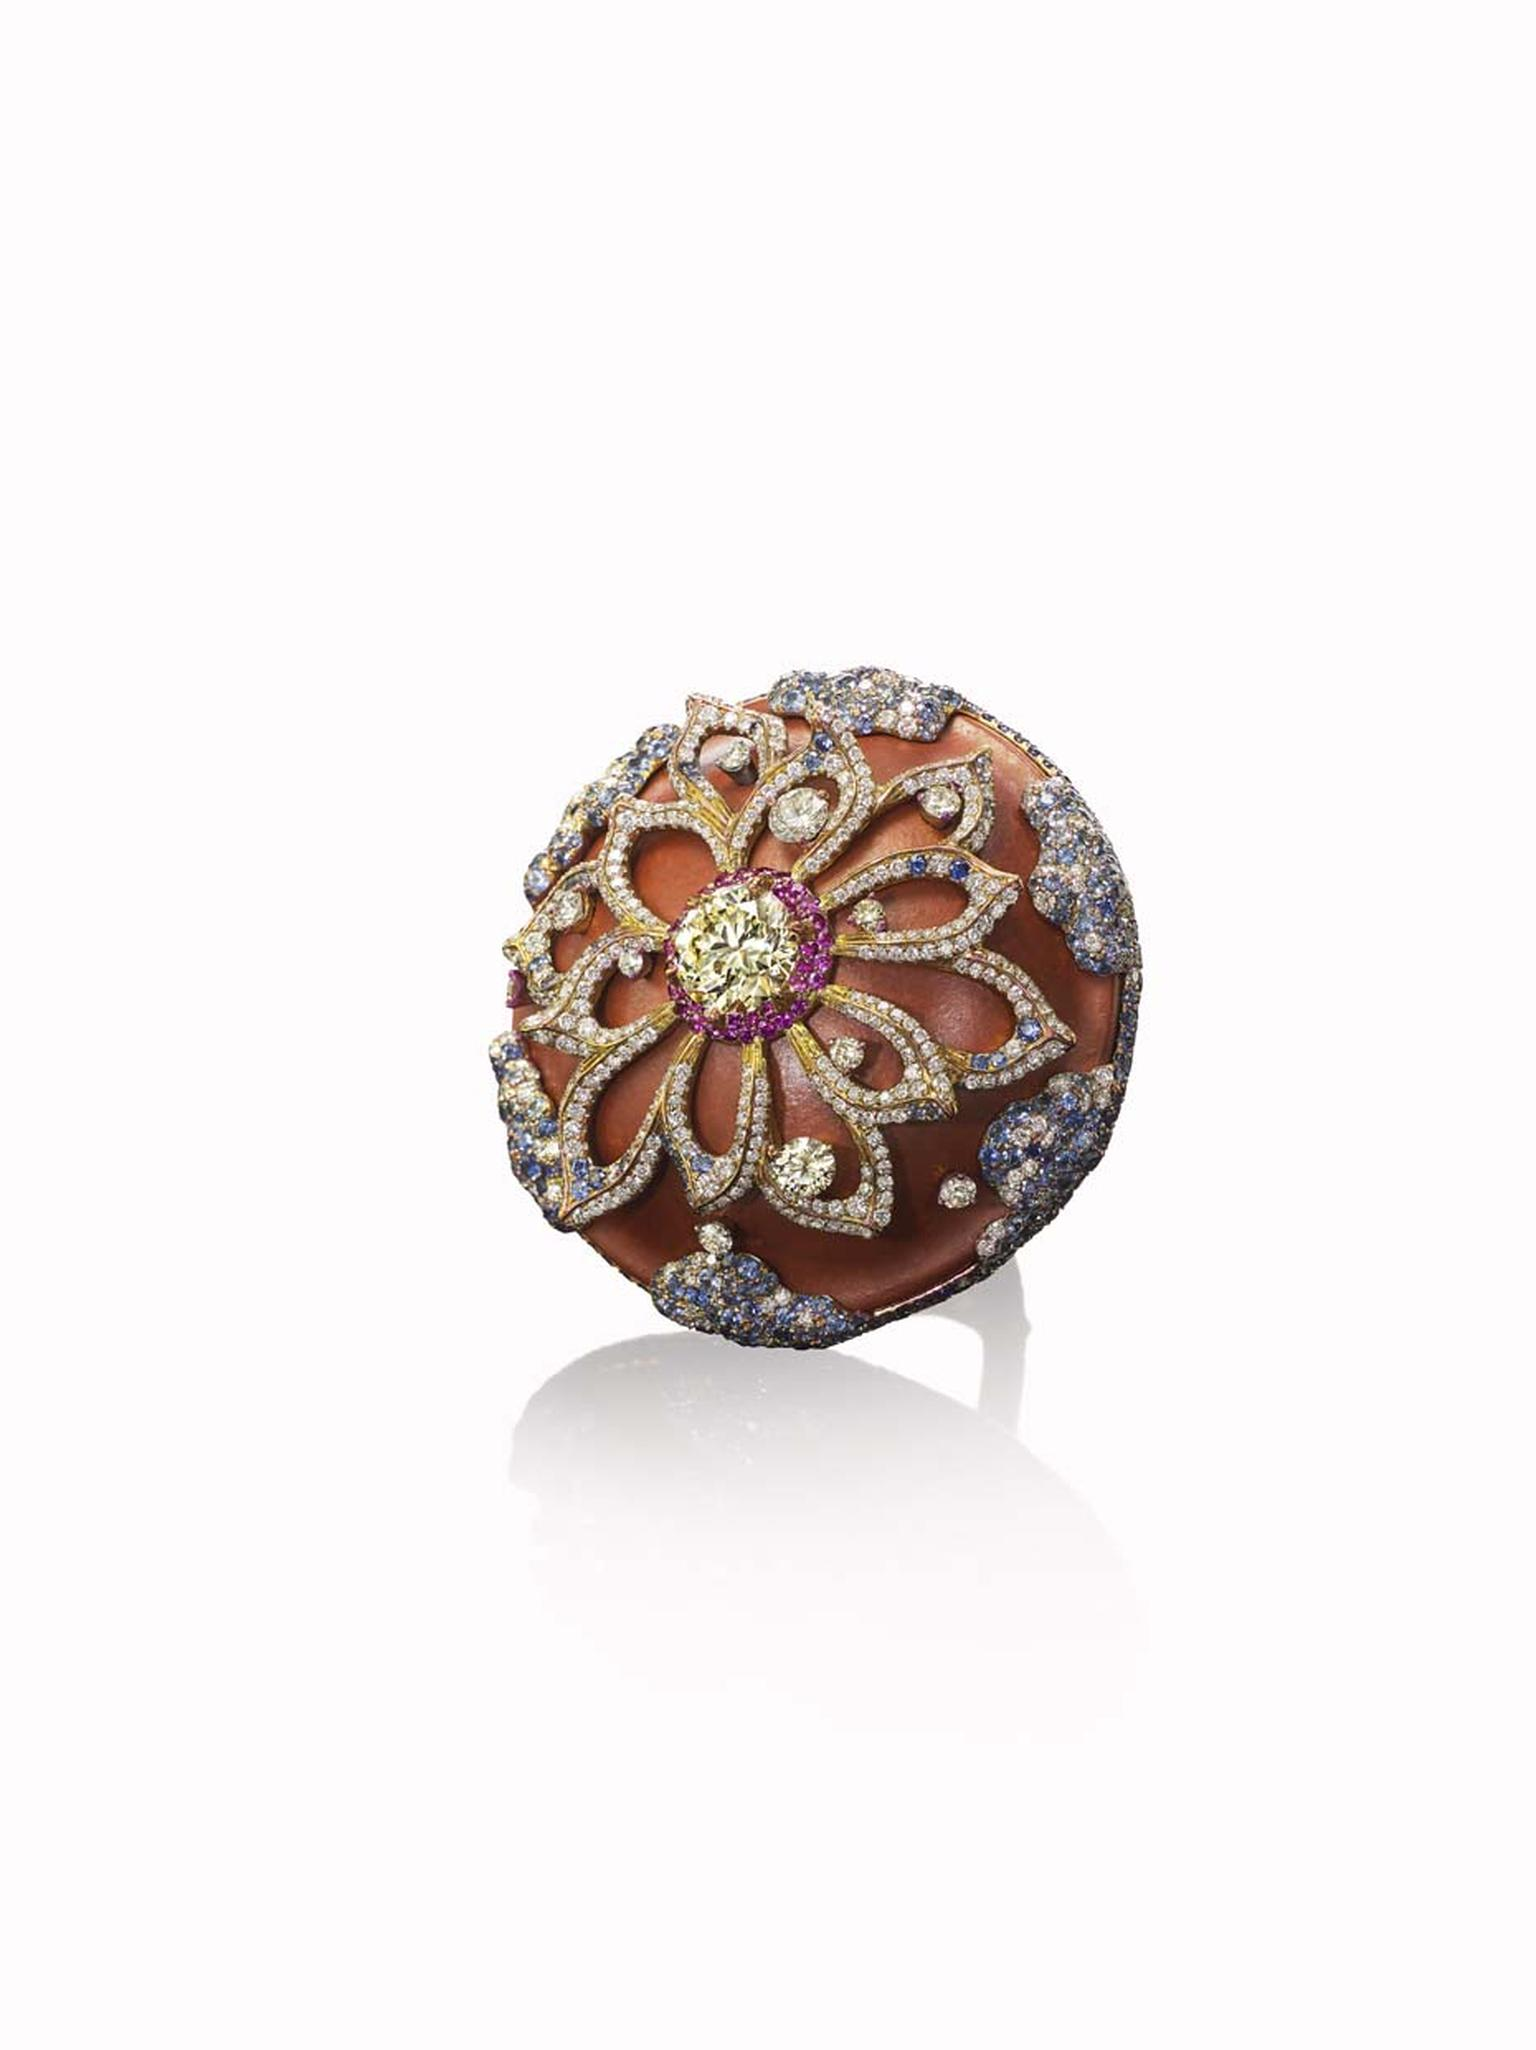 Wallace Chan Graceland ring featuring diamonds, pink sapphires and porcelain.